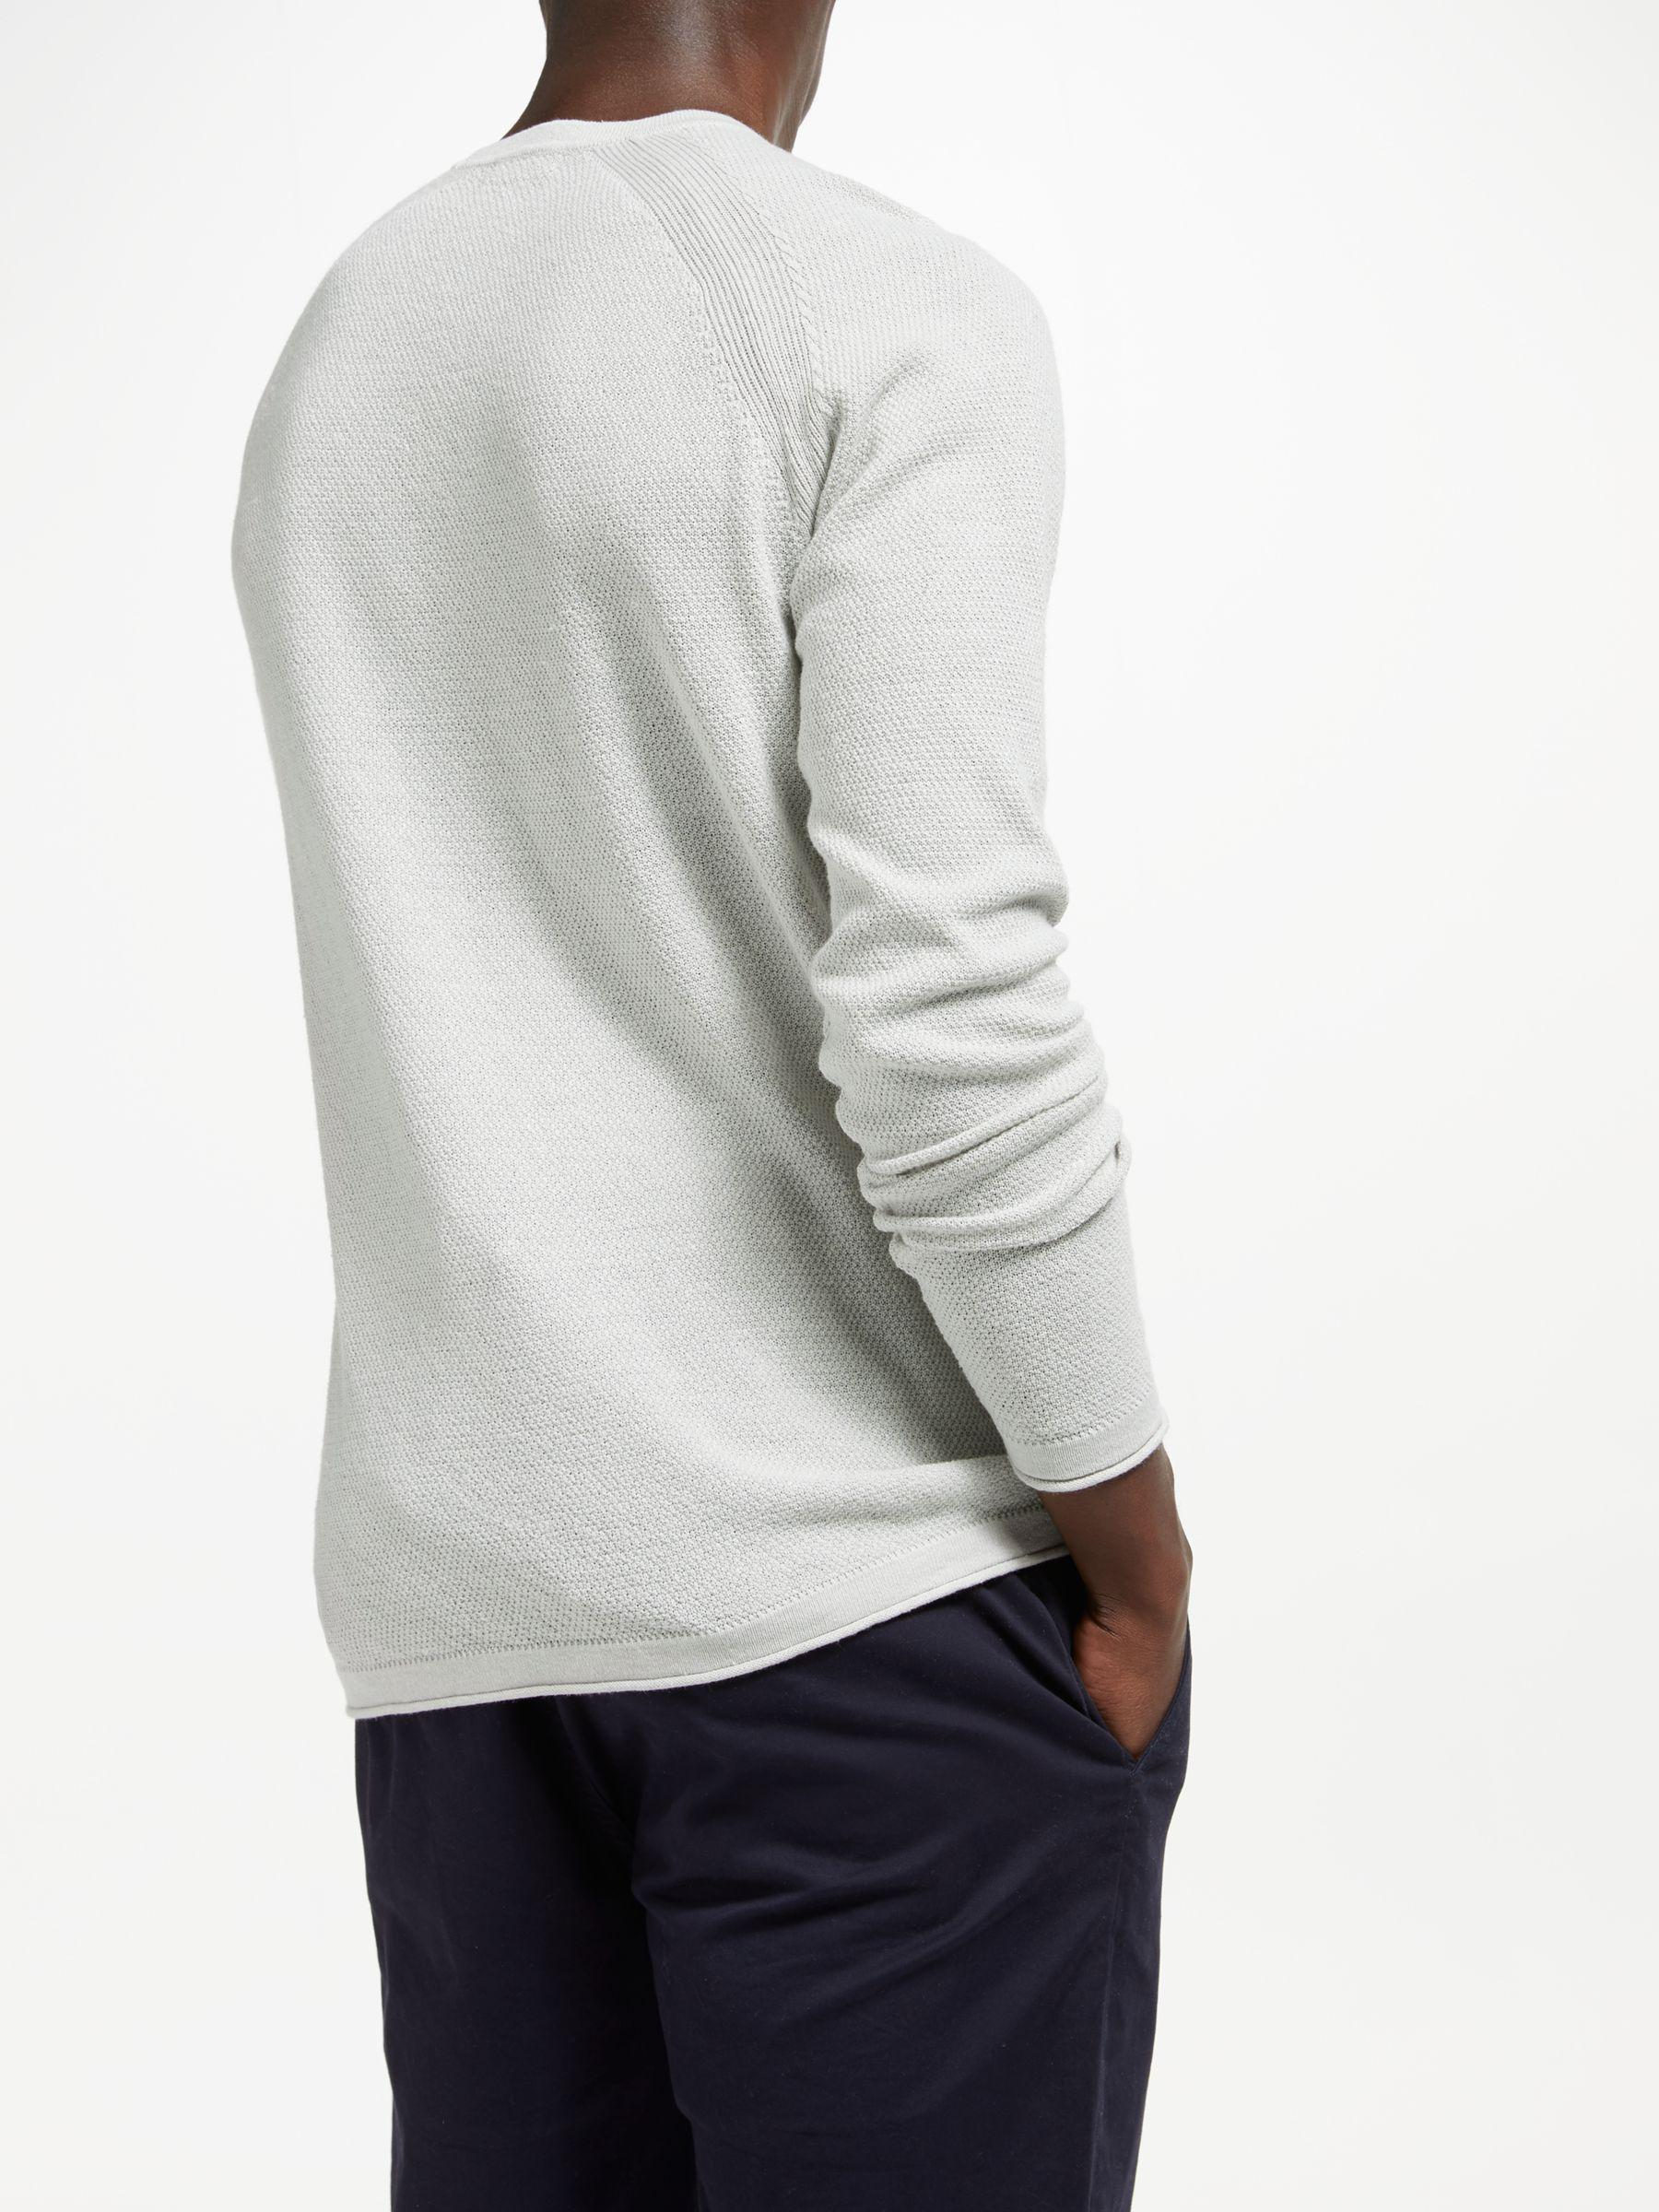 db0205202b J.Lindeberg Roller Linen Two Tone Sweater in Gray for Men - Lyst